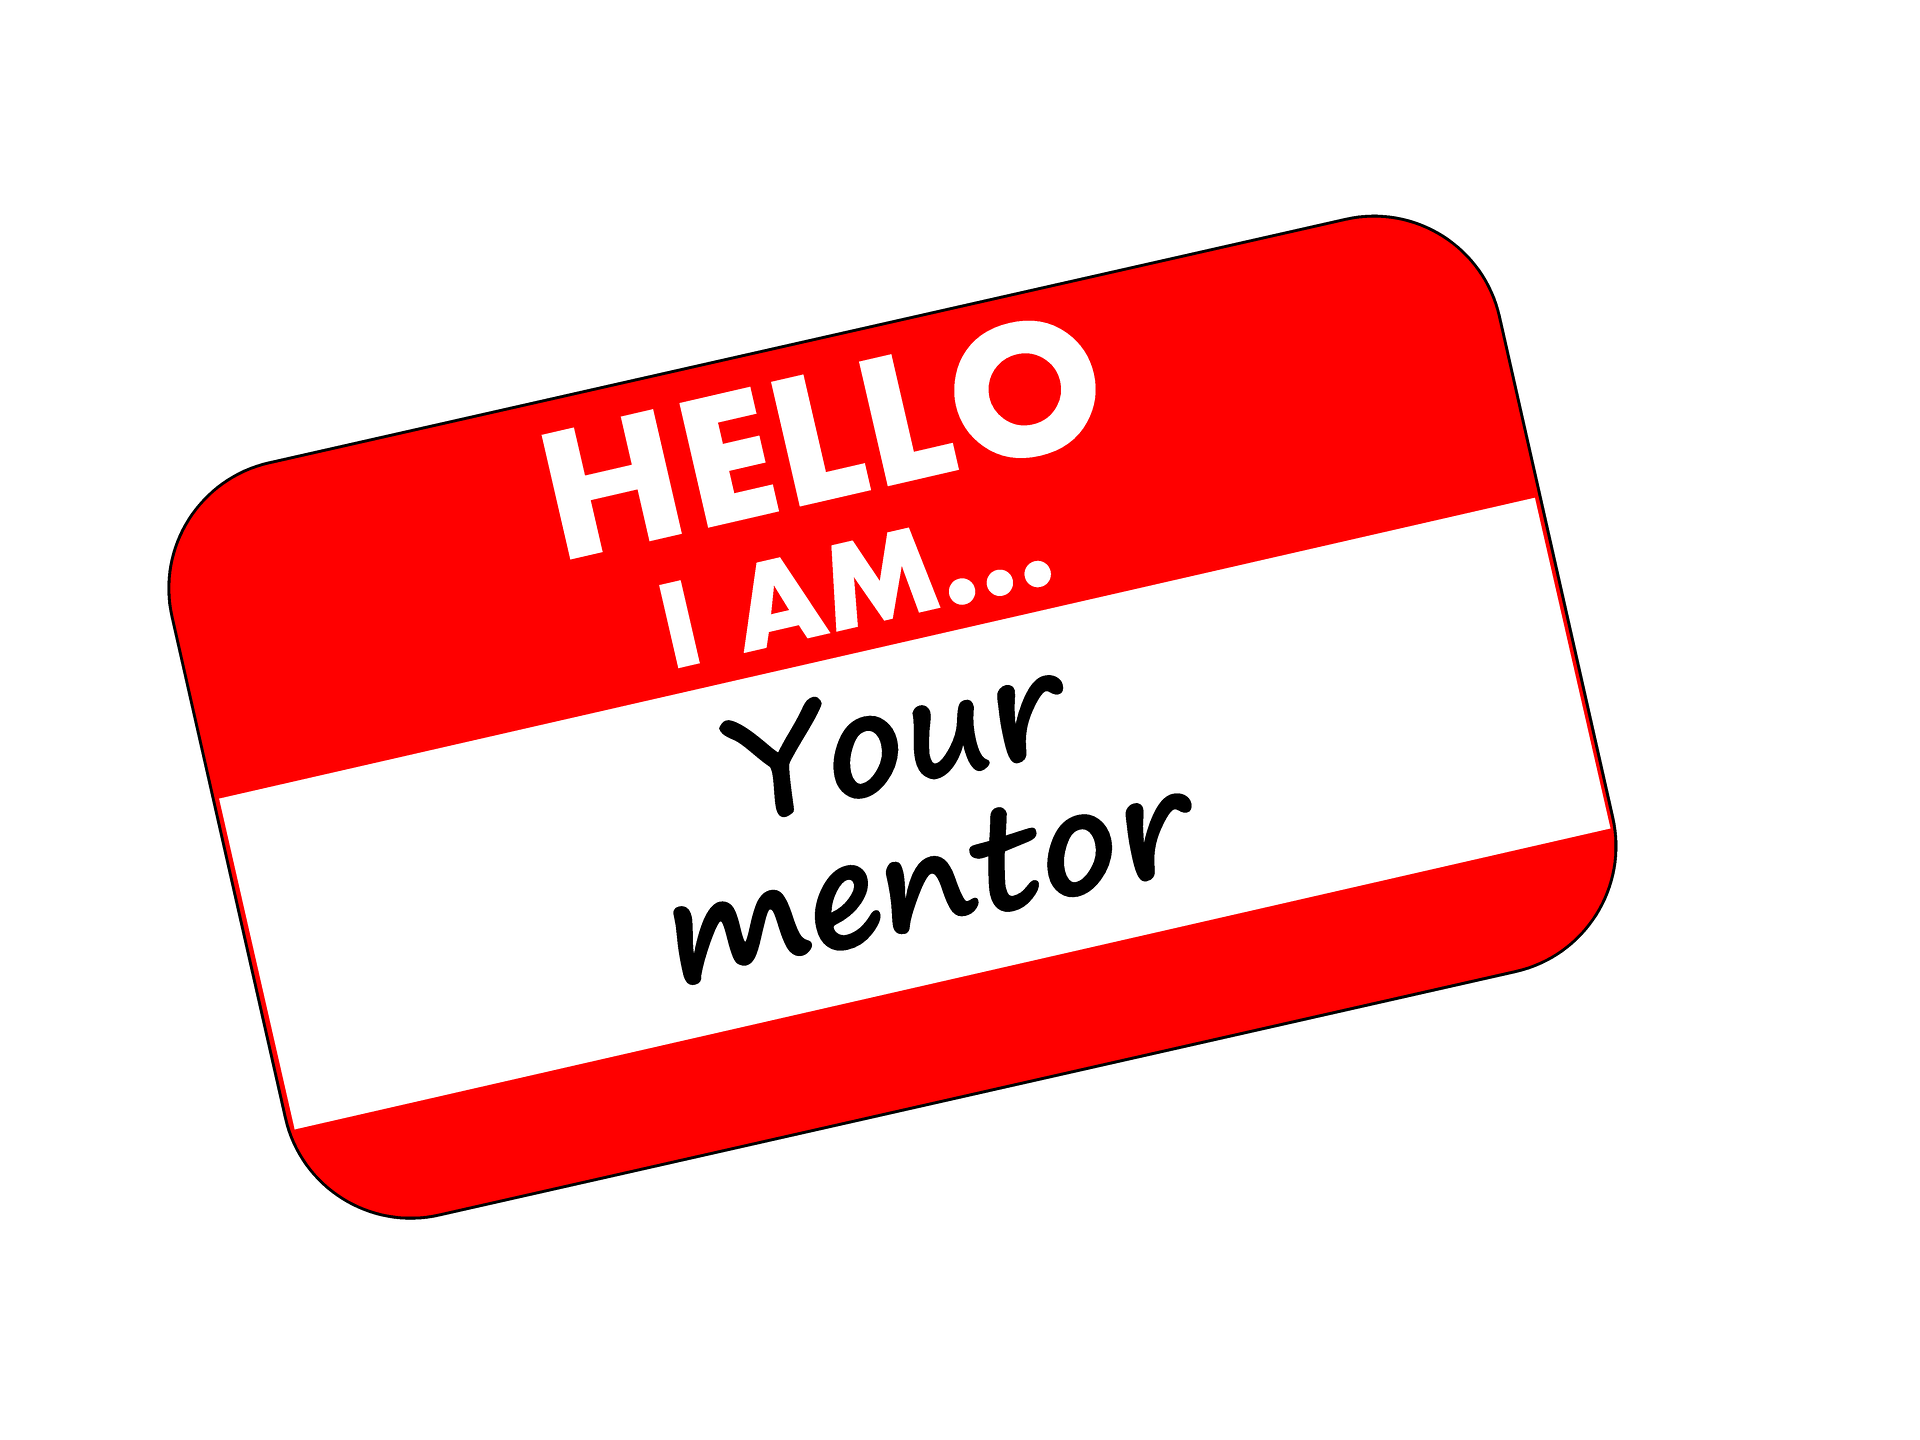 Blog posted by potential mentit mentors